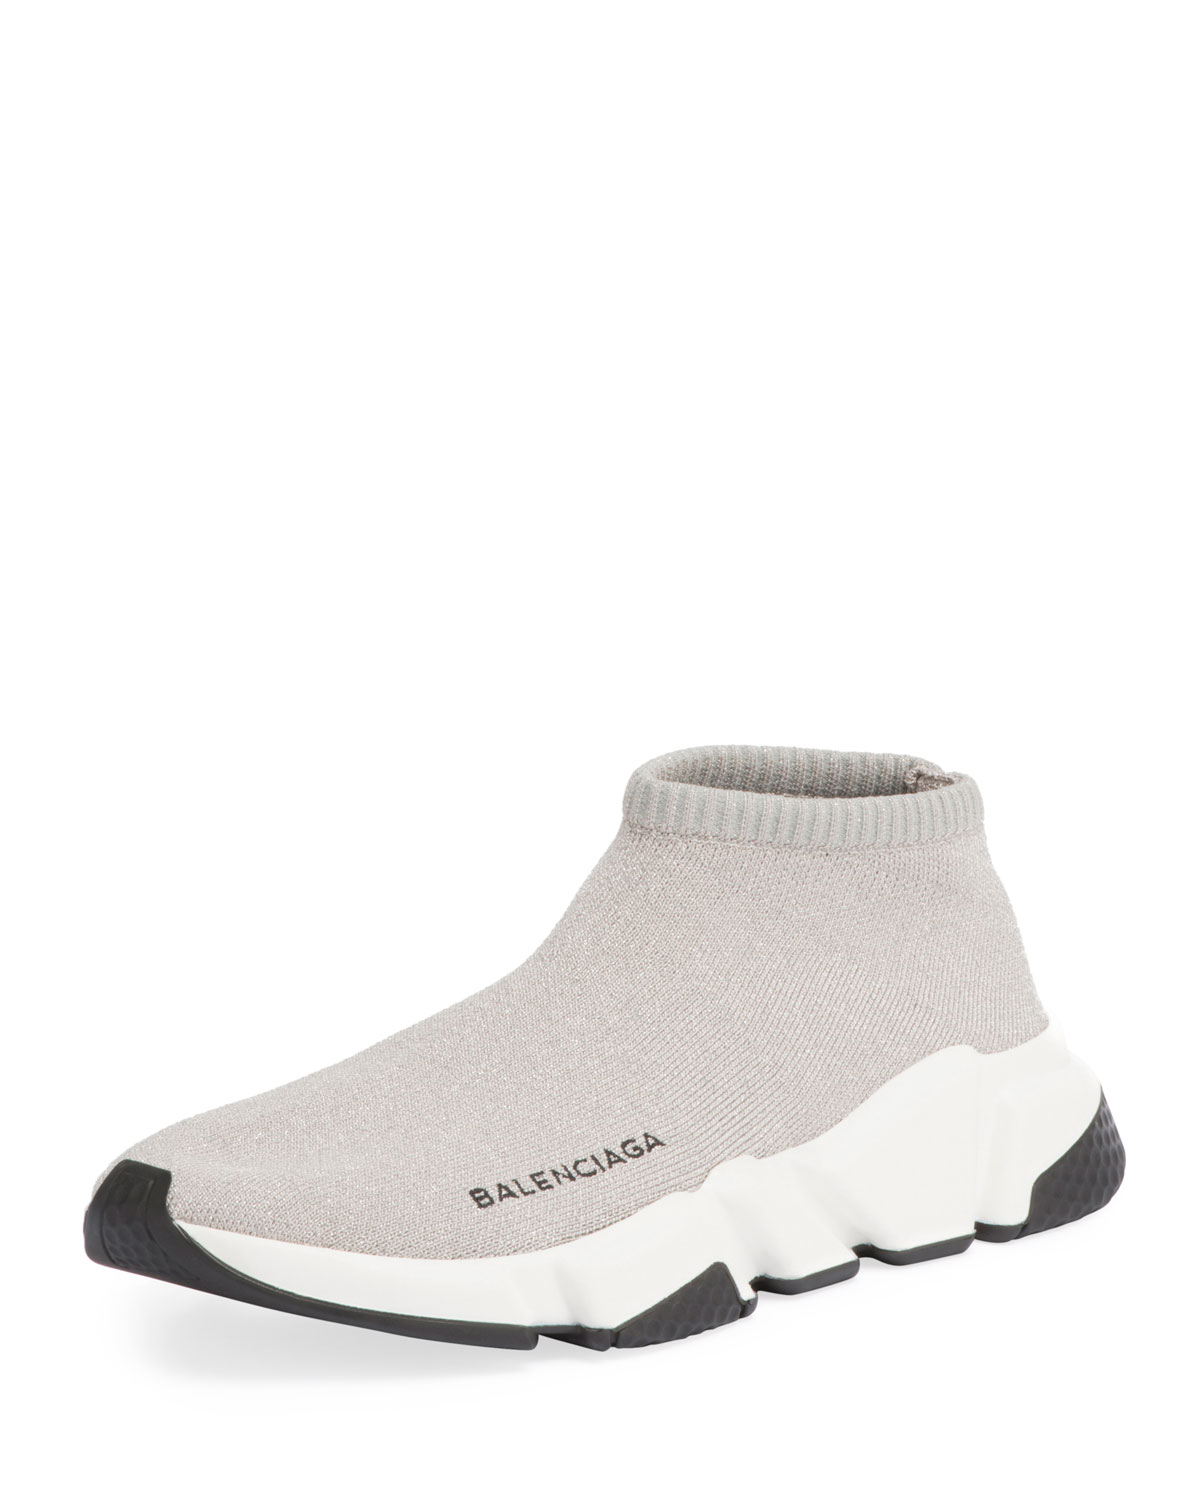 89af17abfe83 Balenciaga Metallic Knit Sock Sneakers